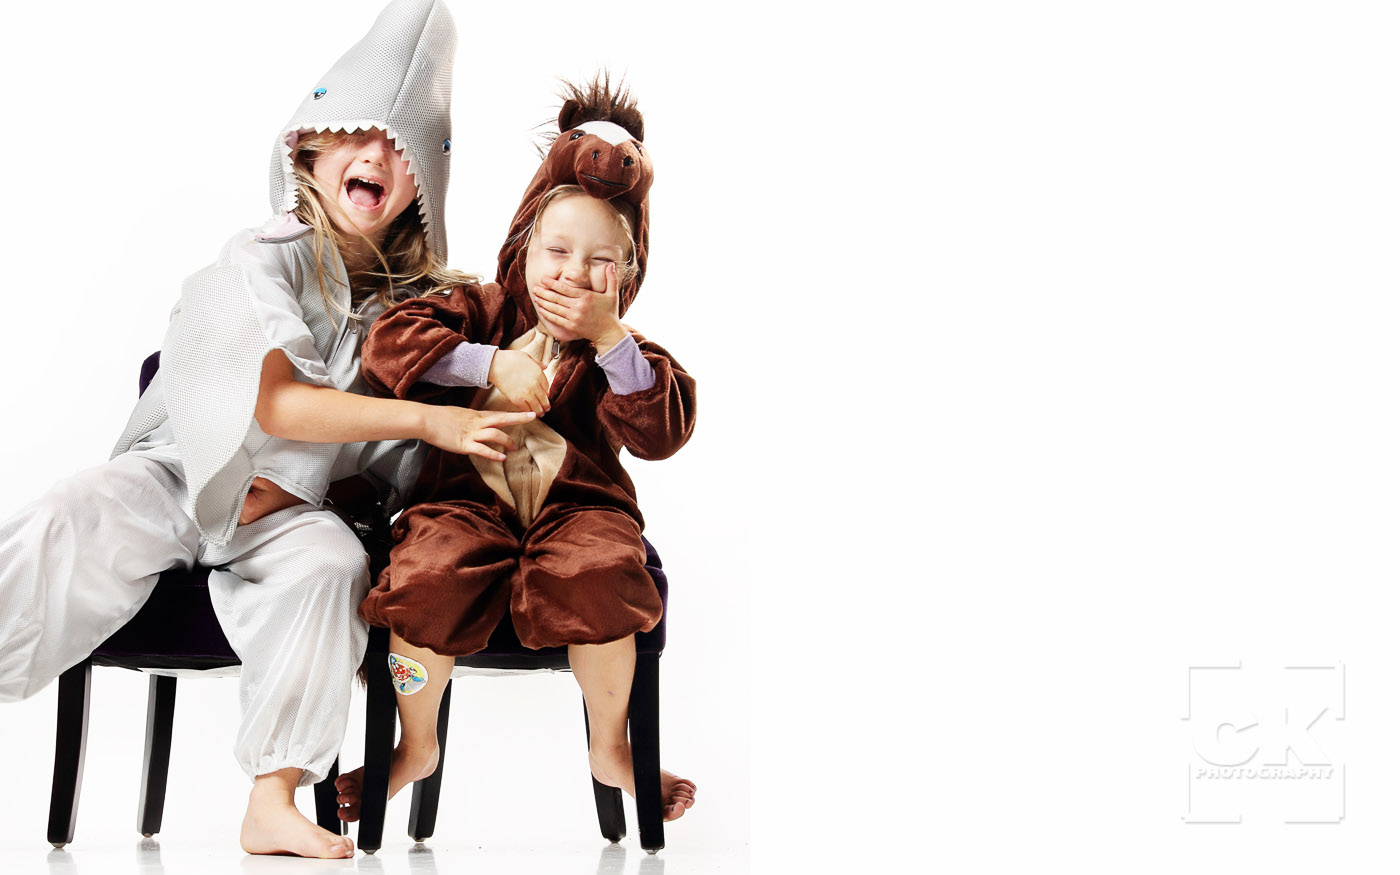 Chris Kryzanek Photography children - sisters in costumes laughing